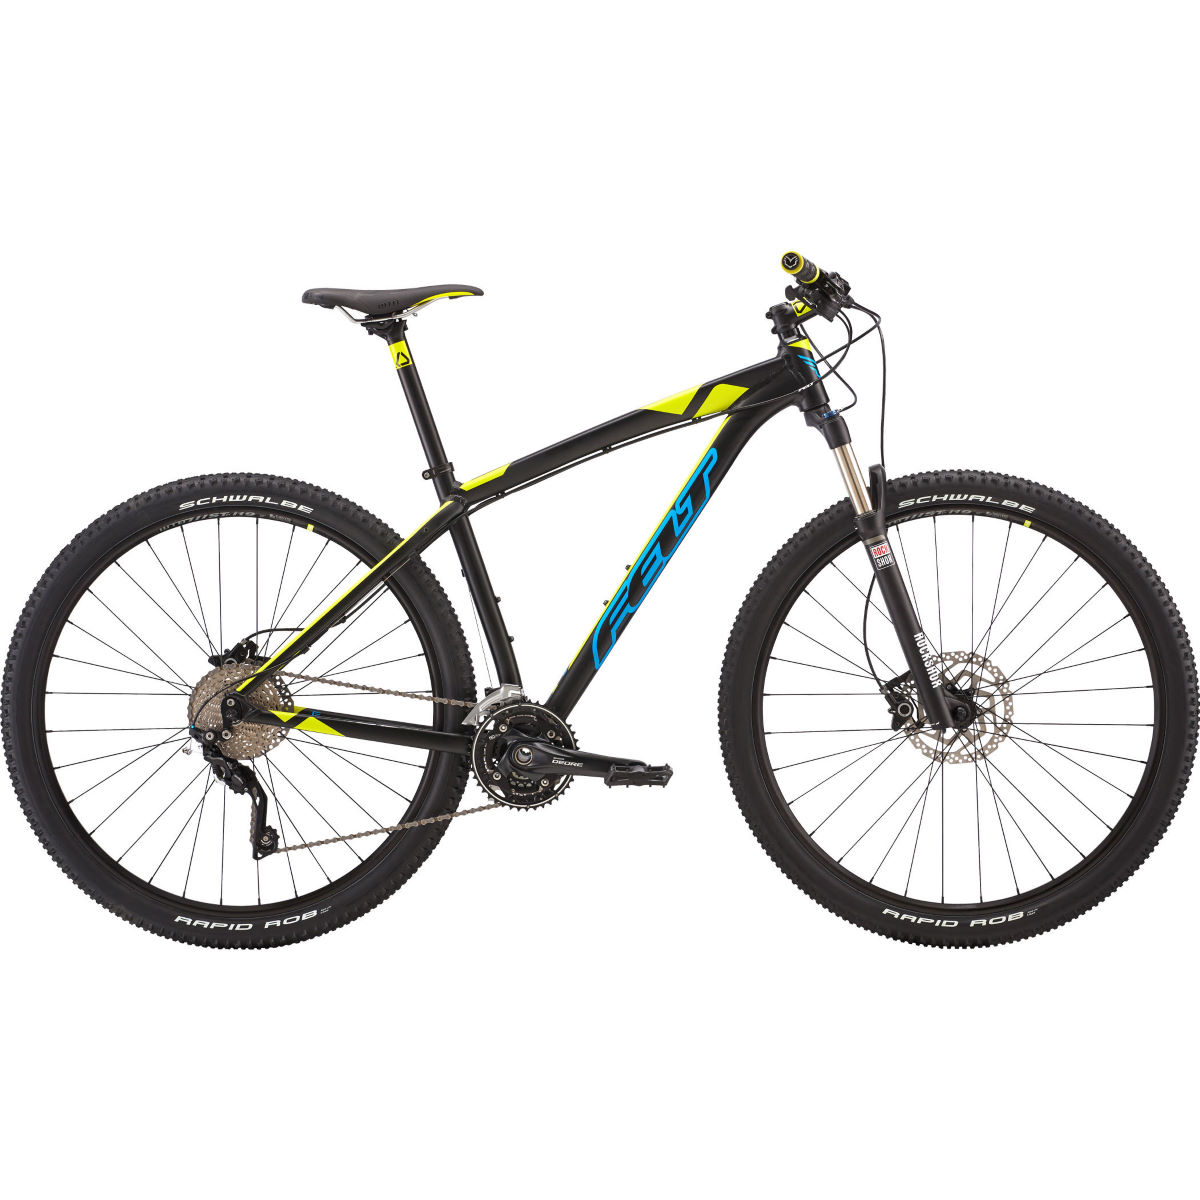 VTT Felt Nine 50 (2017) - 14'' Stock Bike Matte Black/Blue